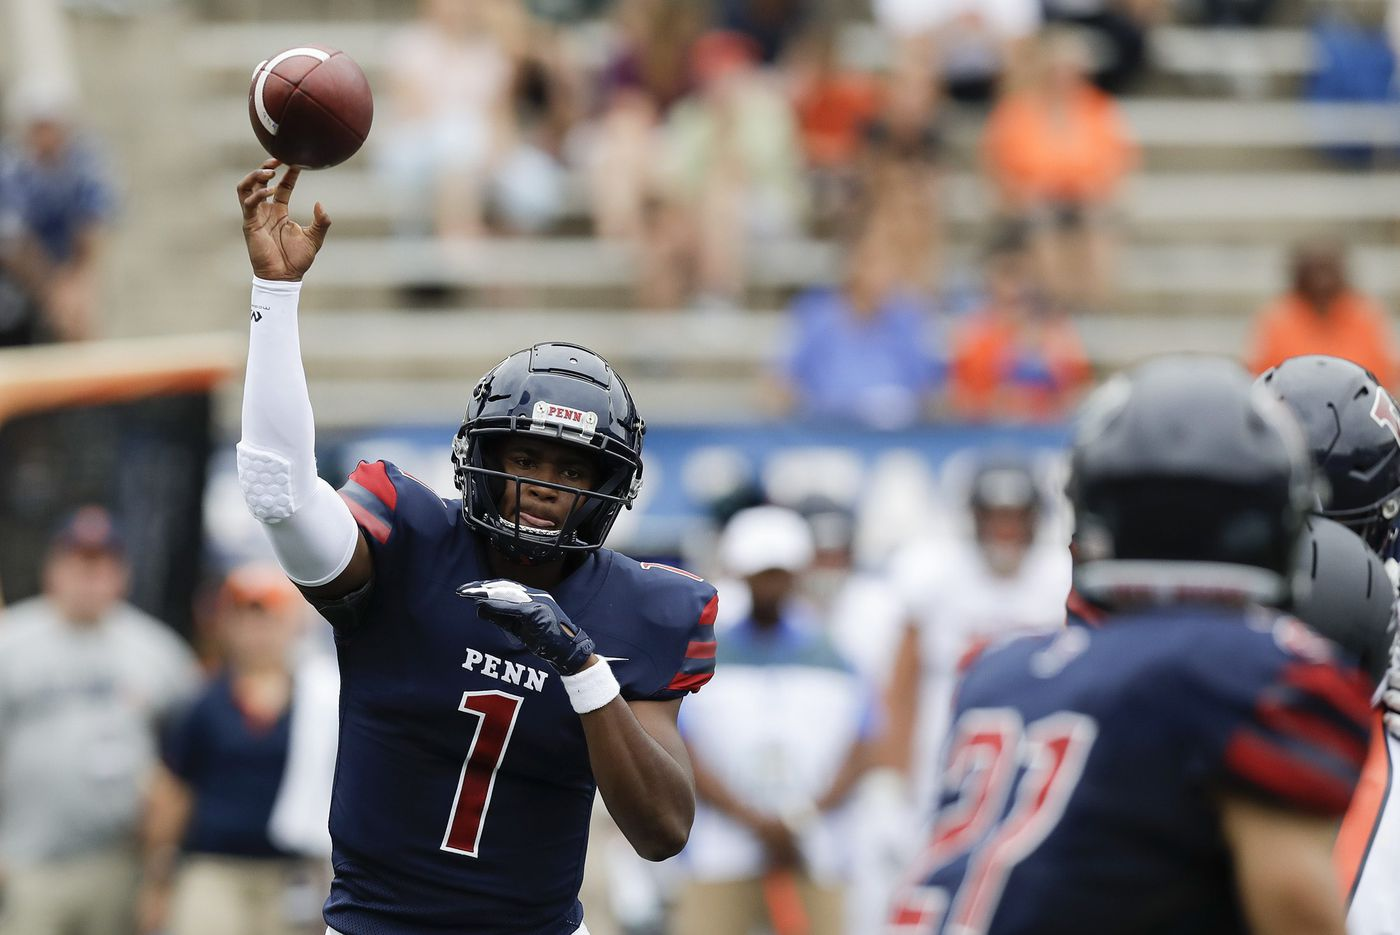 Penn coach Ray Priore likes what he saw and didn't see in QB Ryan Glover's first start